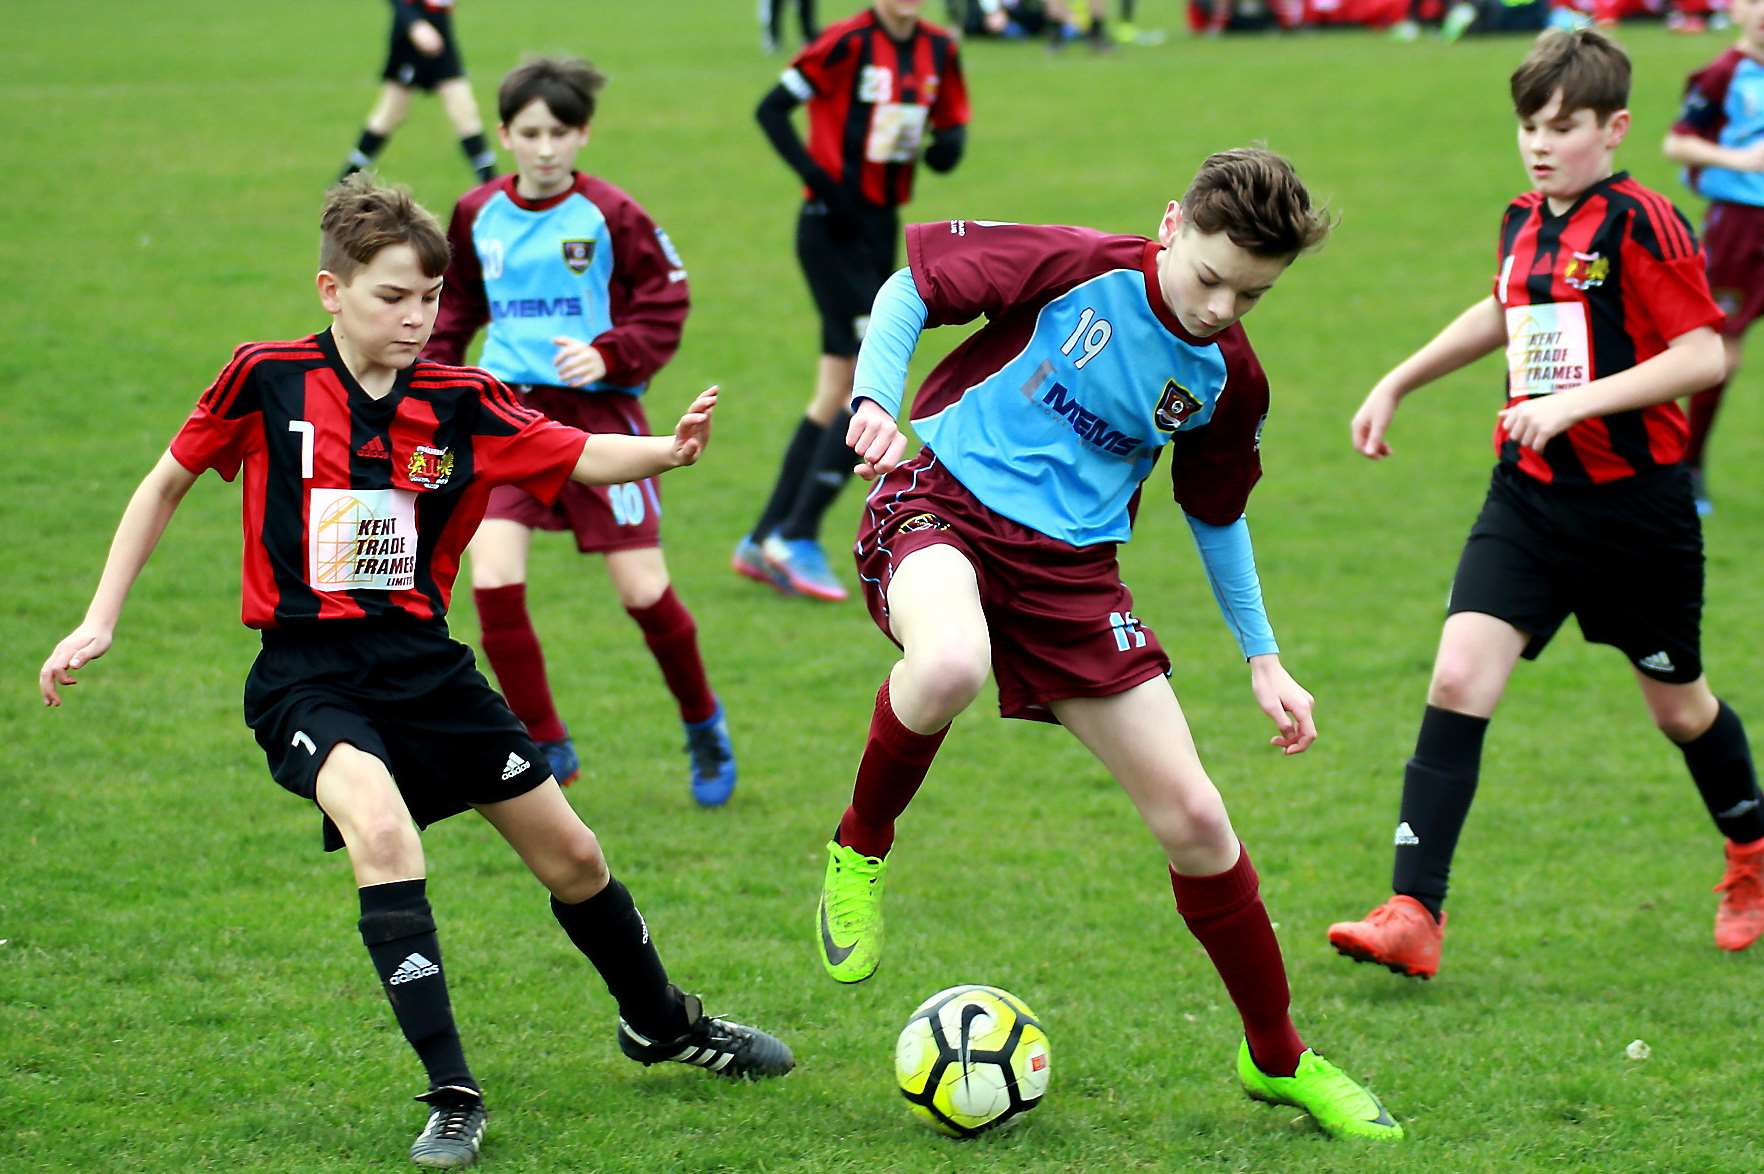 Woodcoombe Youth under-13s try some trickery against Wigmore Youth in Division 1 Picture: Phil Lee